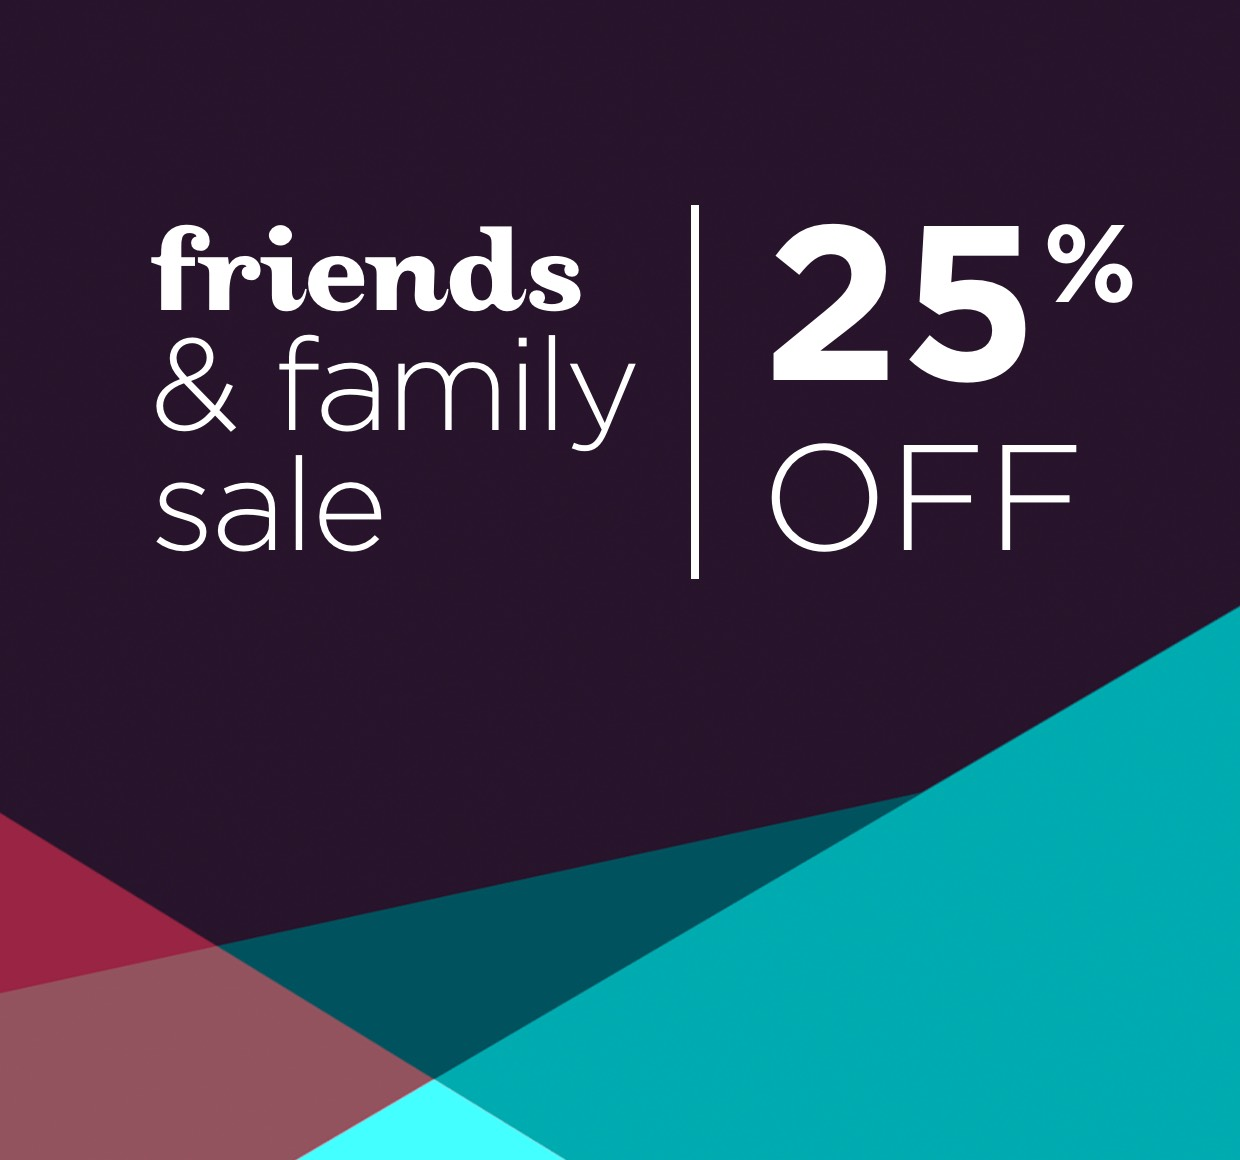 3 DAYS ONLY | Enjoy 25% off | Friends & Family Sale | Use code: FRIENDSFAMILY